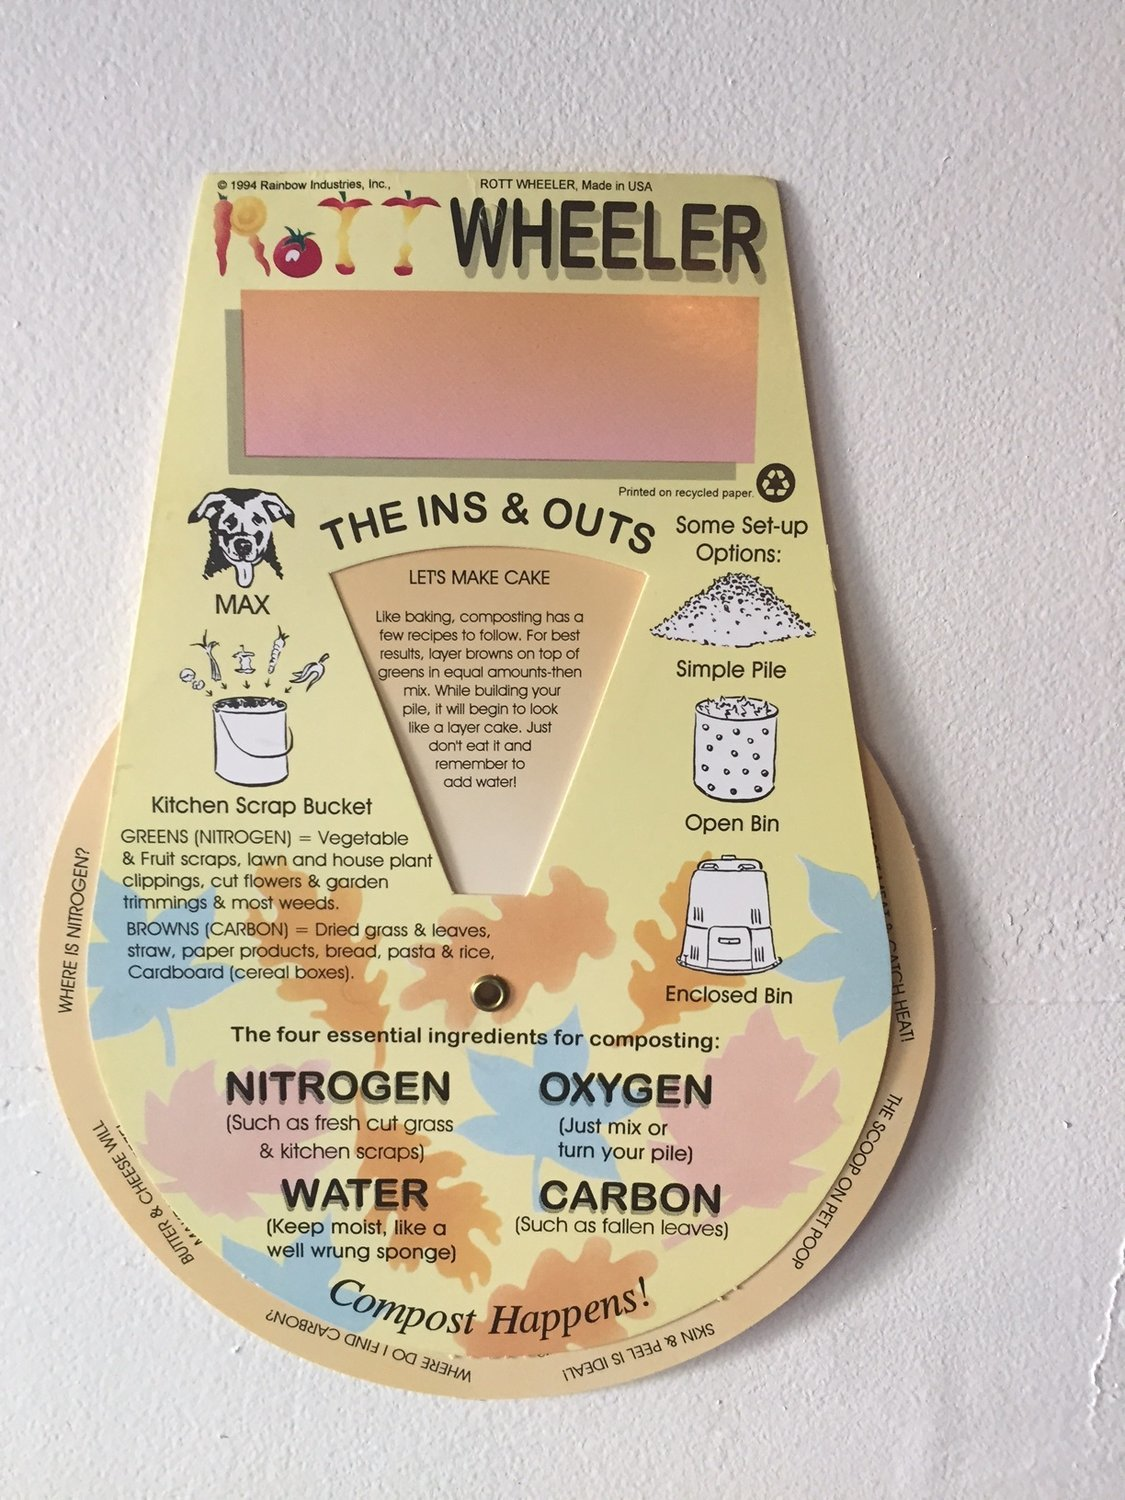 Rottwheeler - educational guide wheel *Included with each compost bin.